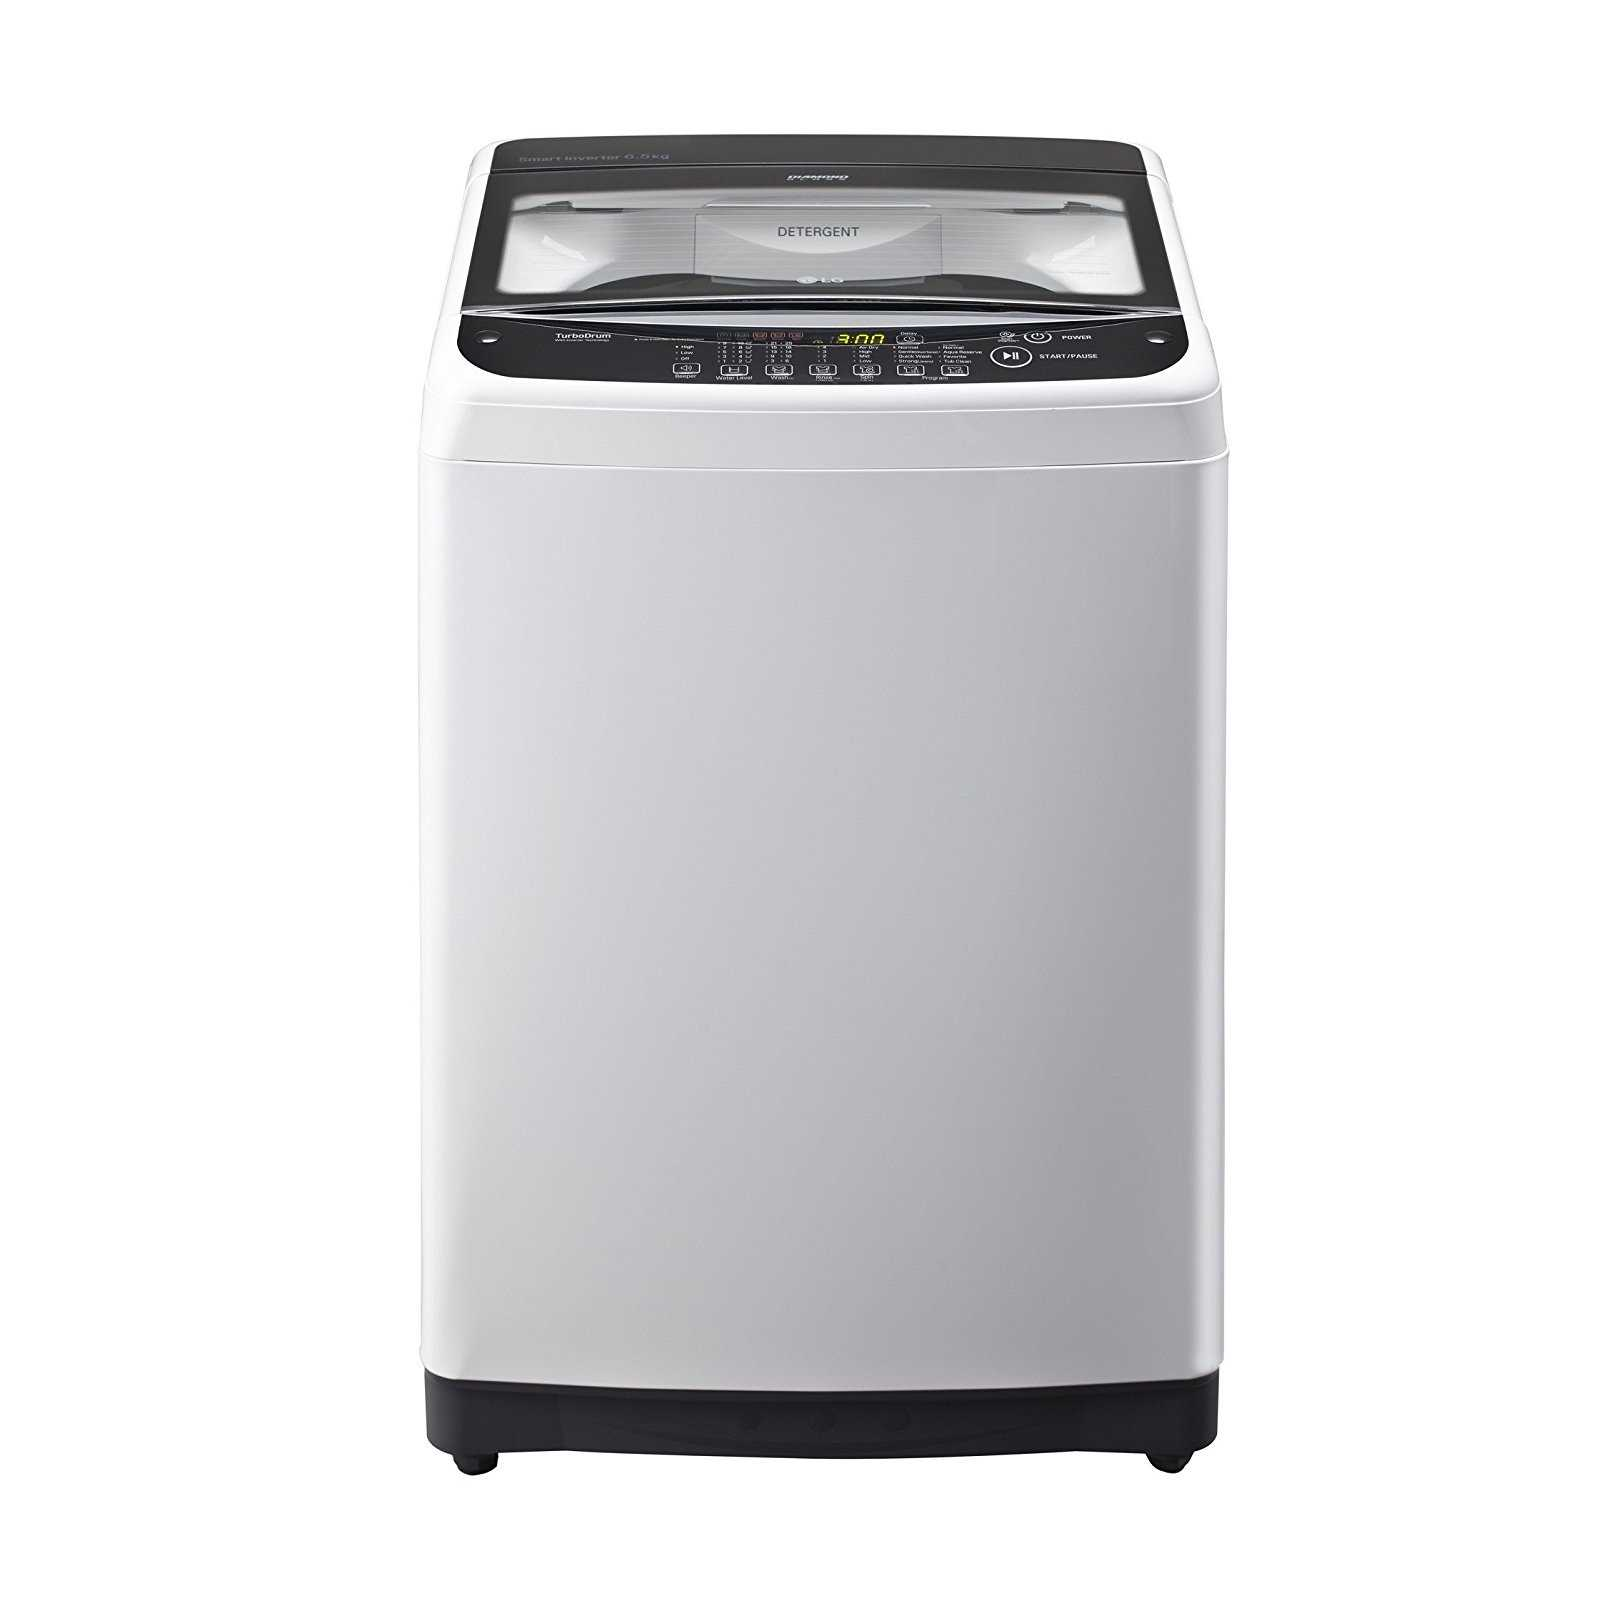 LG T7581NEDLZ 6.5 Kg Fully Automatic Top Loading Washing Machine